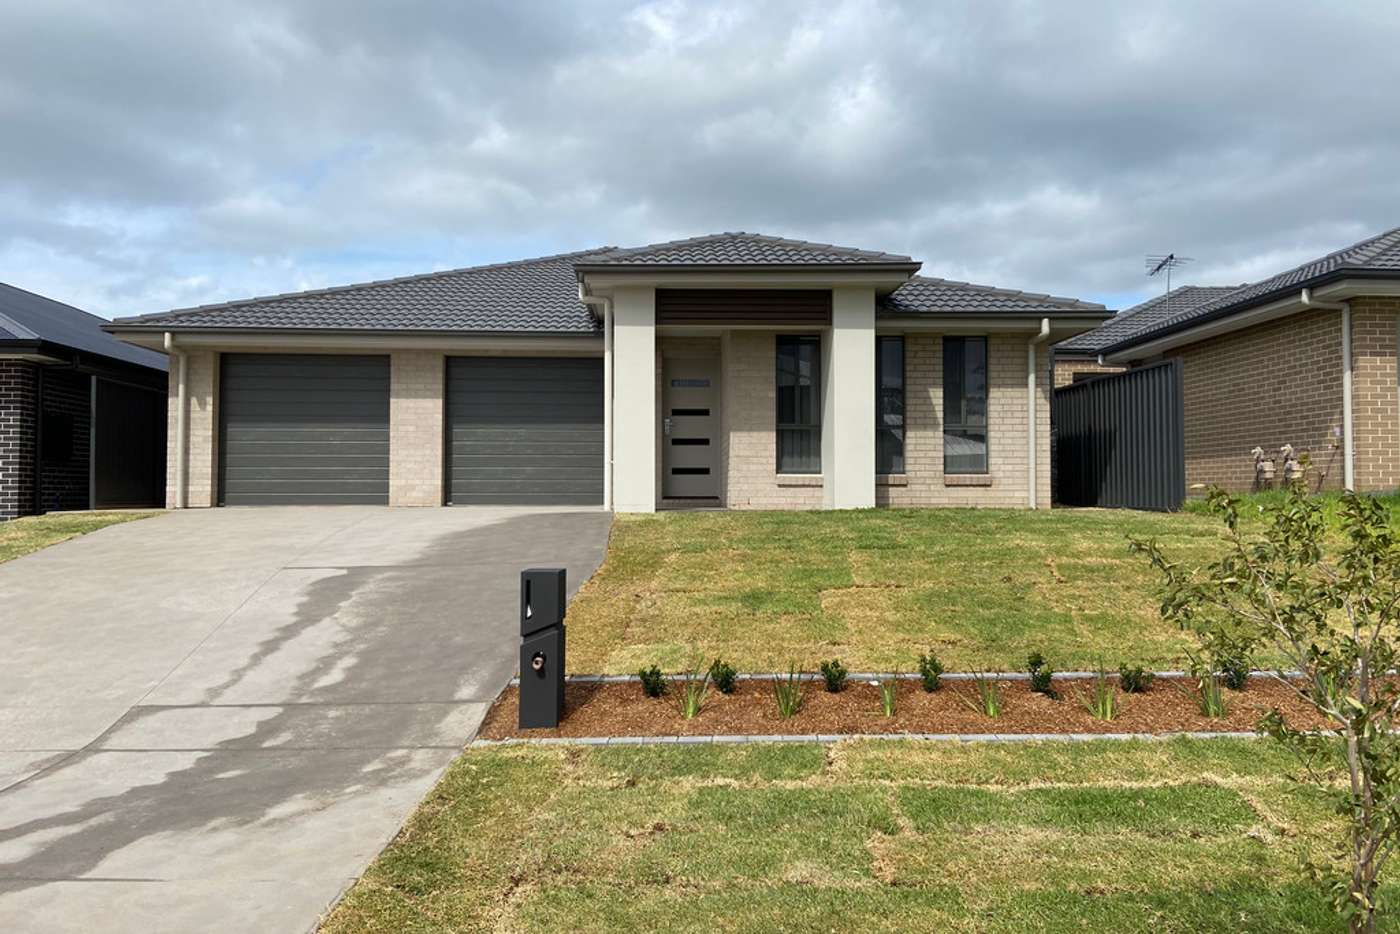 Main view of Homely house listing, 49 Chalker Street, Thirlmere NSW 2572